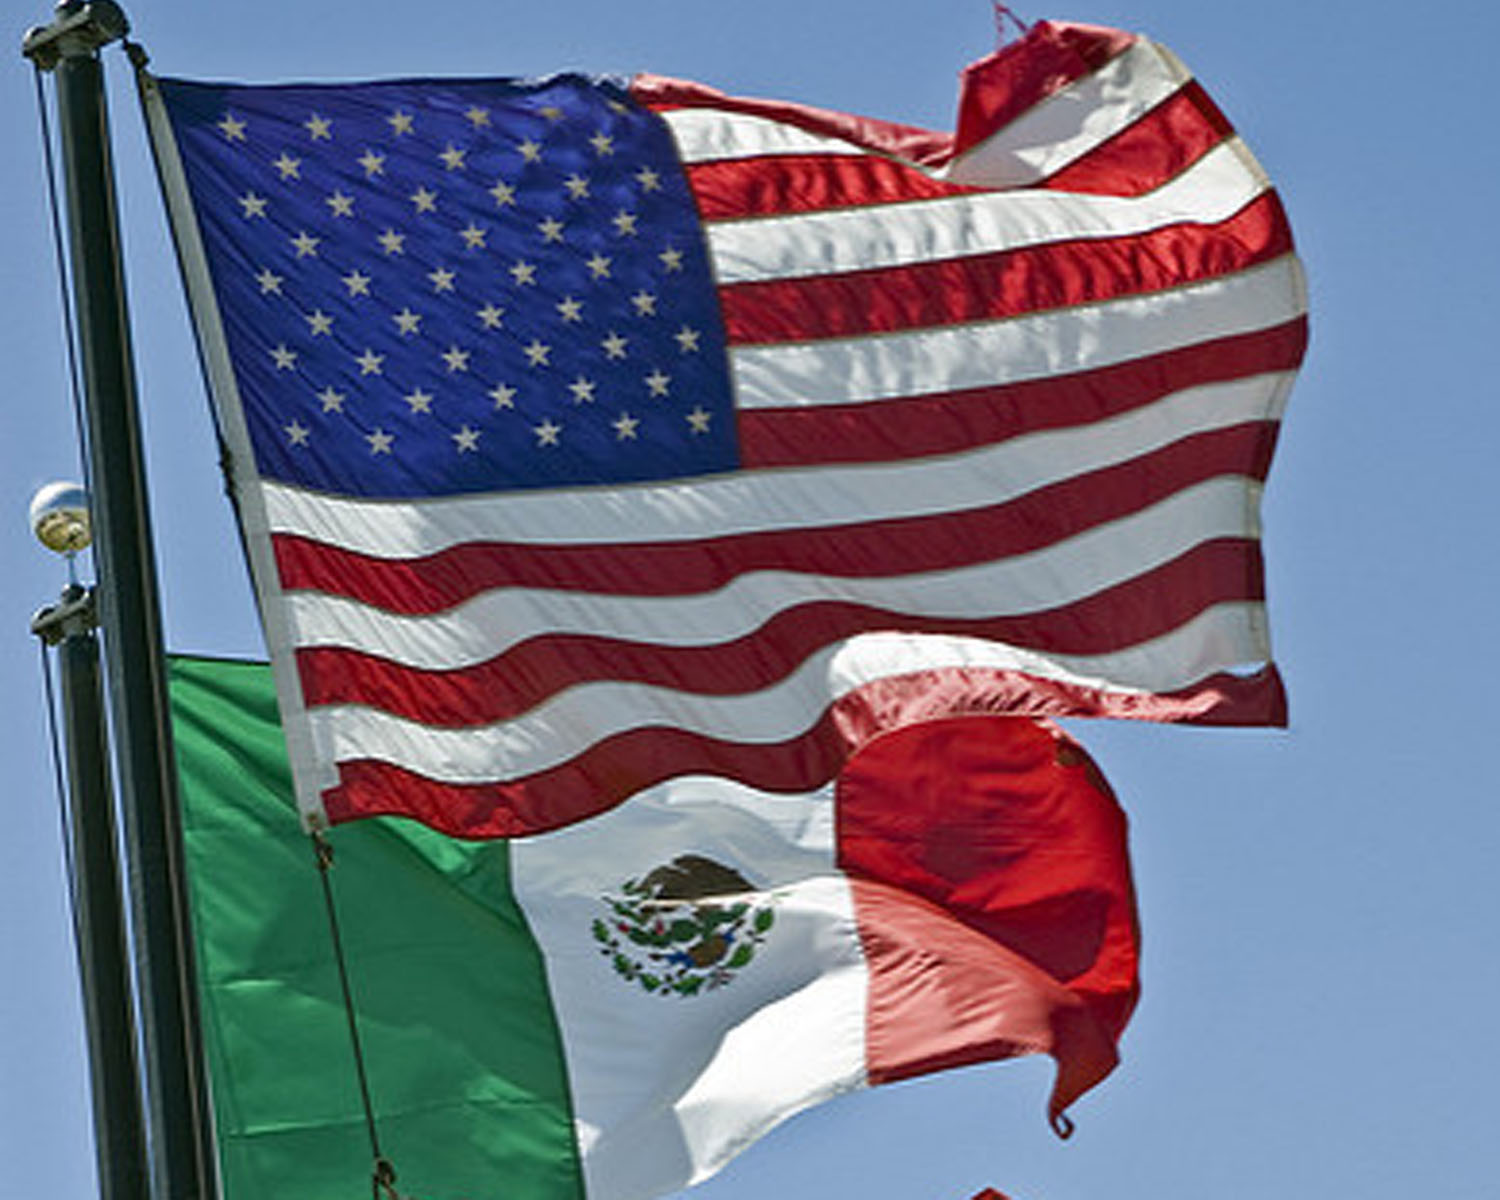 Mexicans in US sending less money home - Mexico Institute